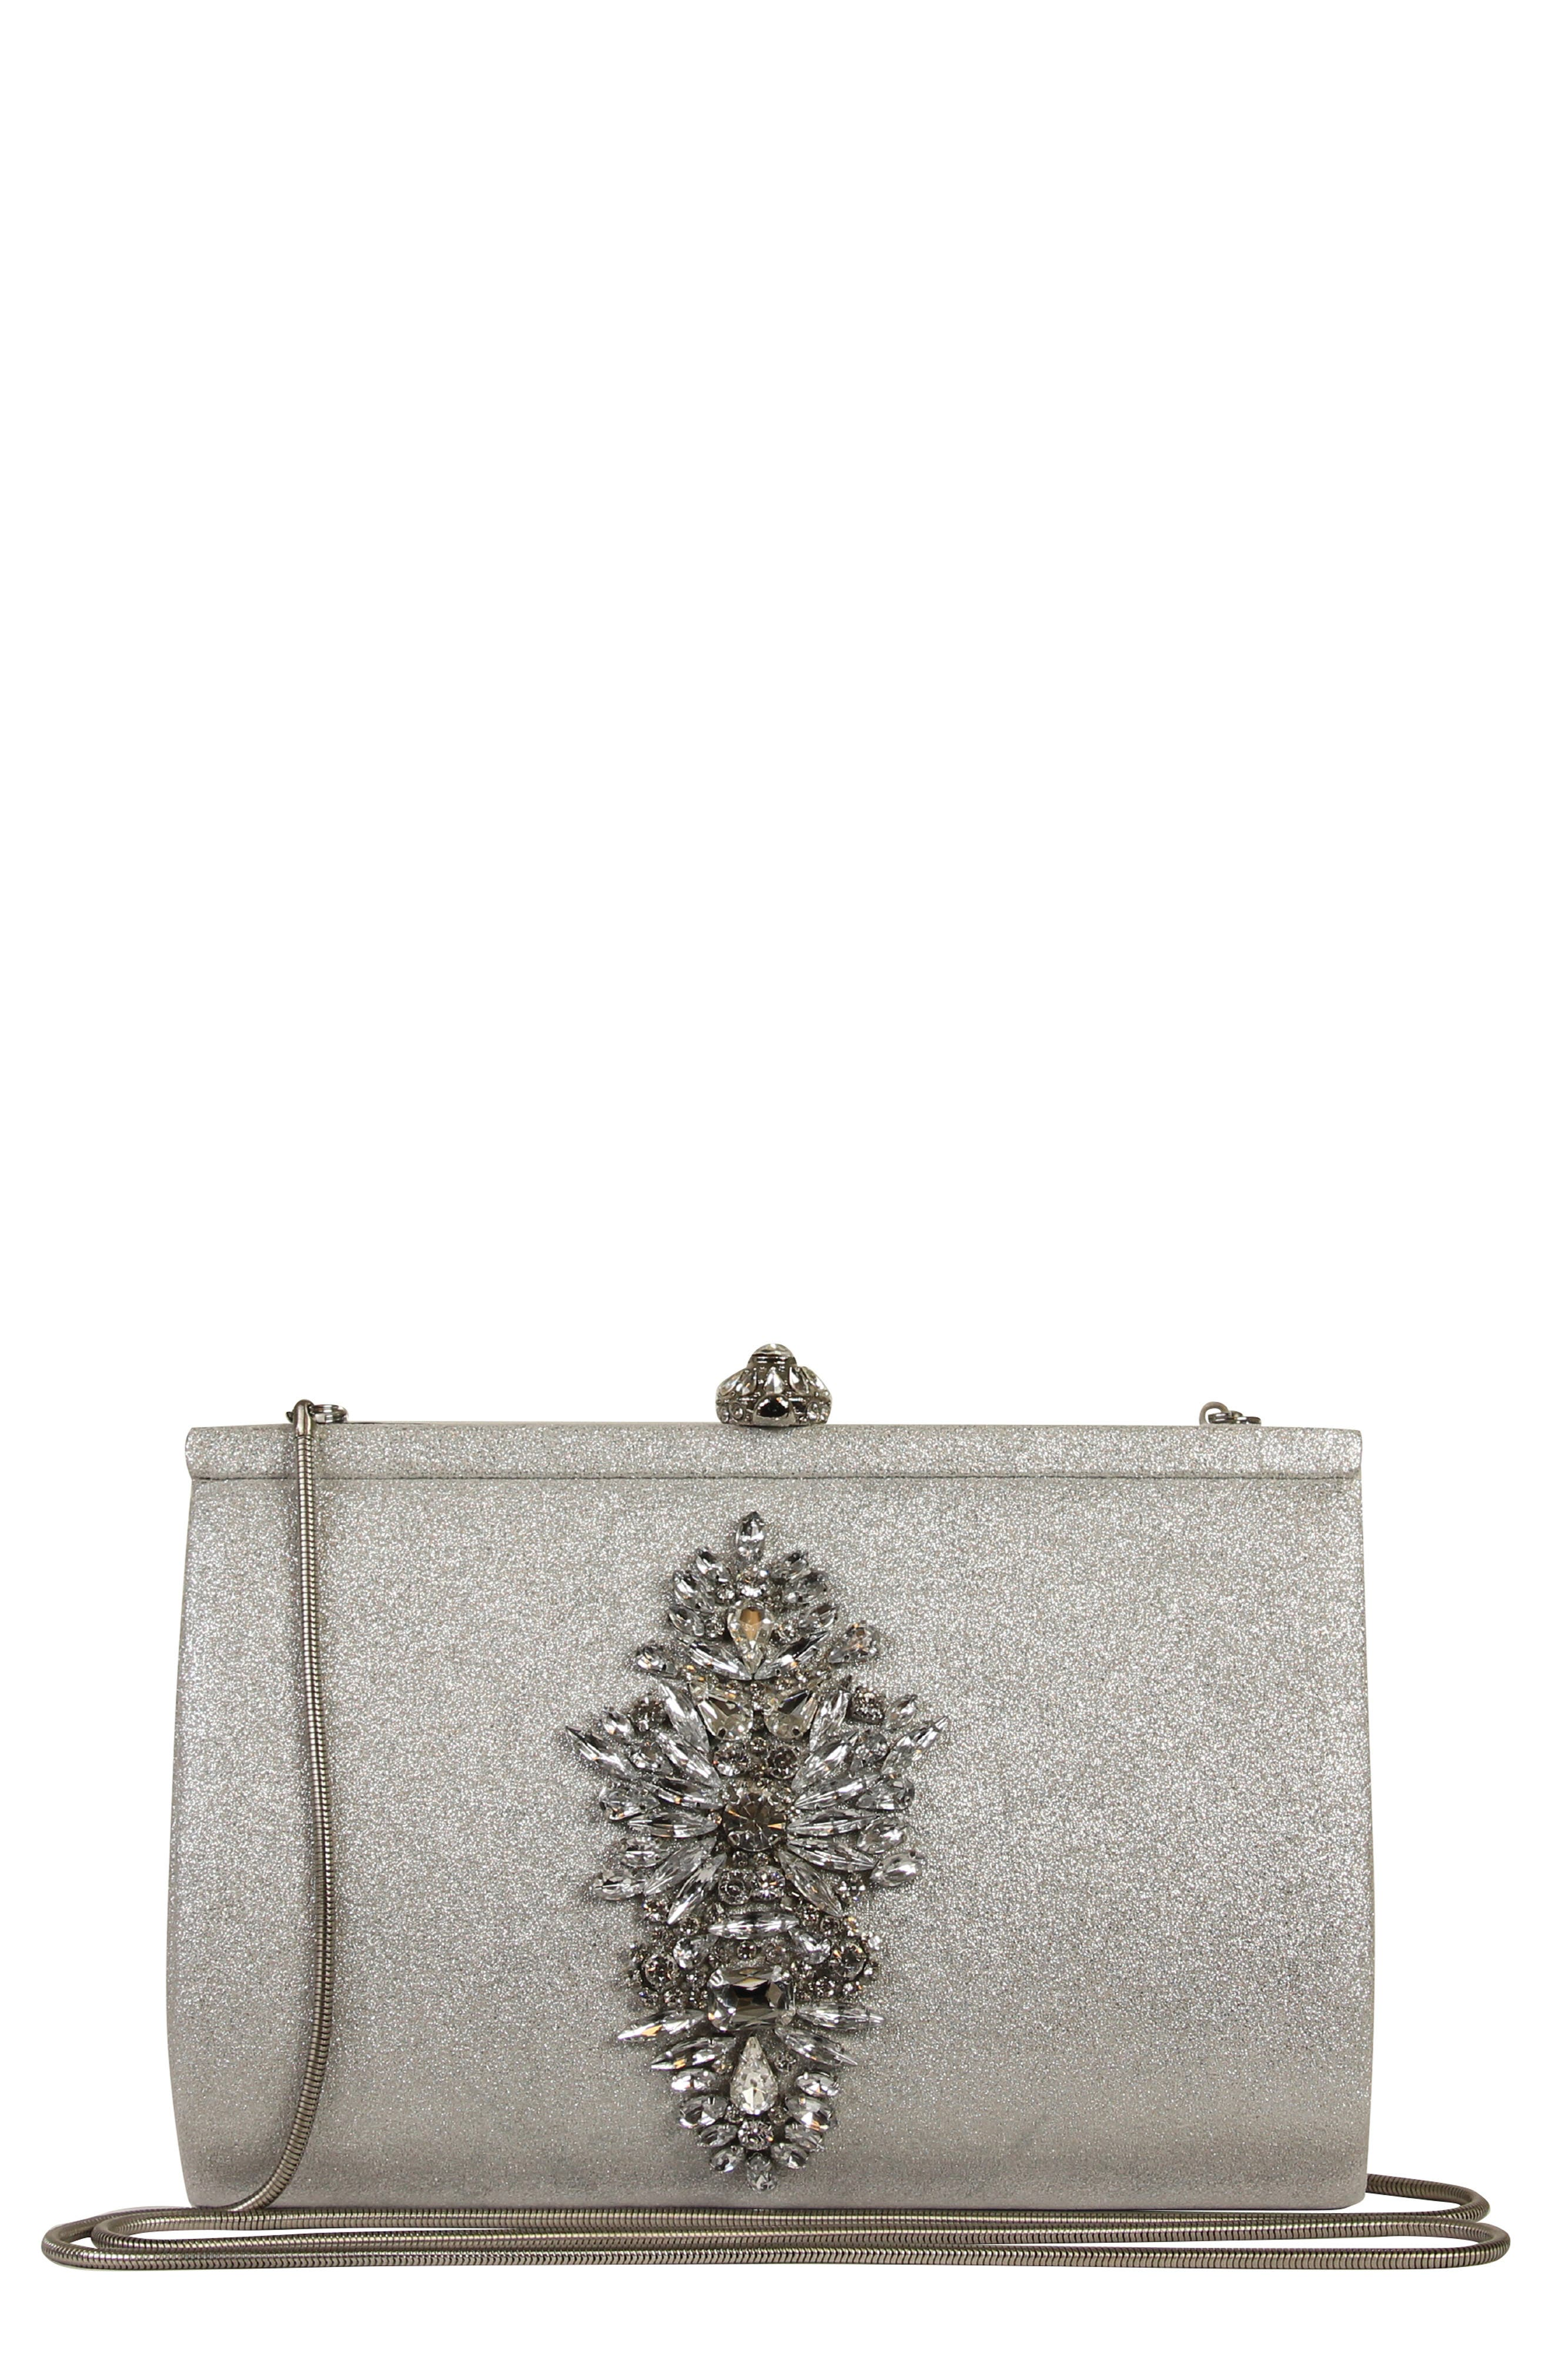 Galaxy Embellished Clutch,                             Main thumbnail 1, color,                             040